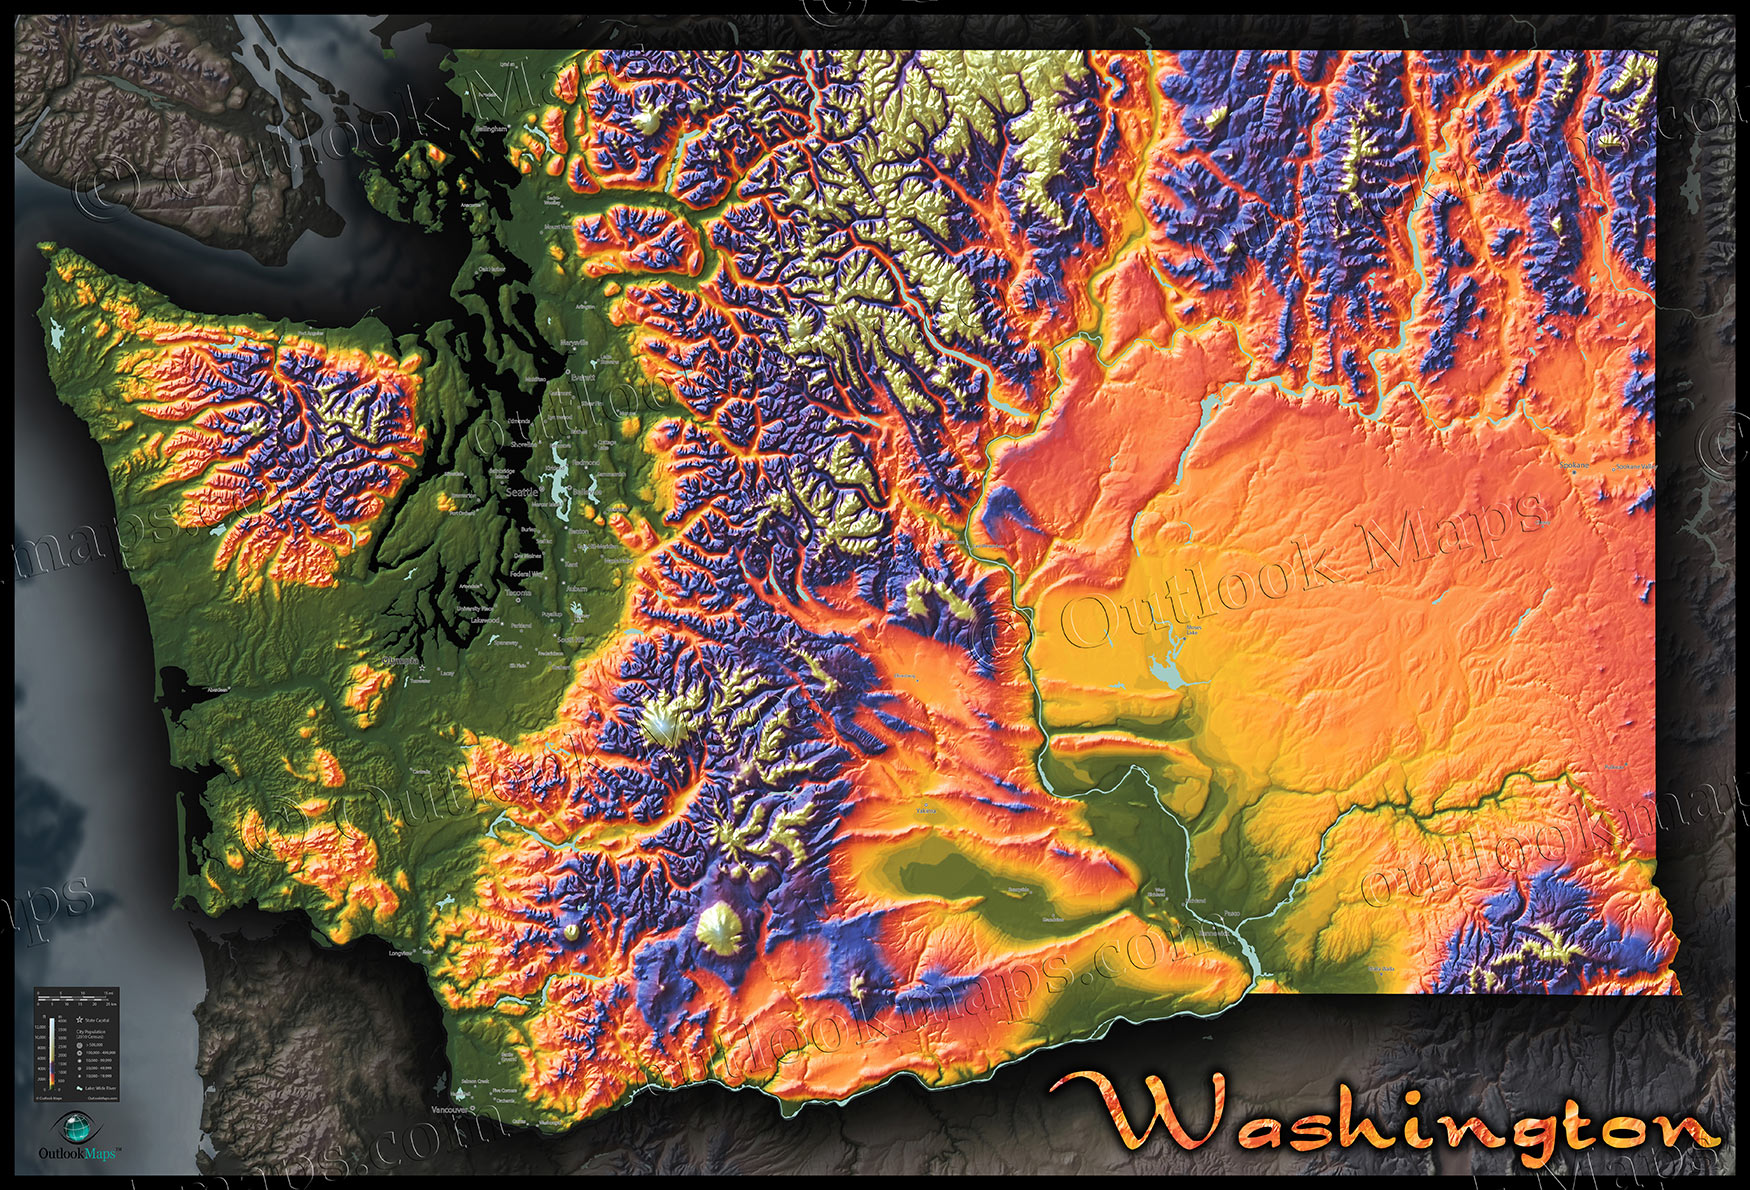 Topo Map of Washington State | Colorful Mountains & Terrain